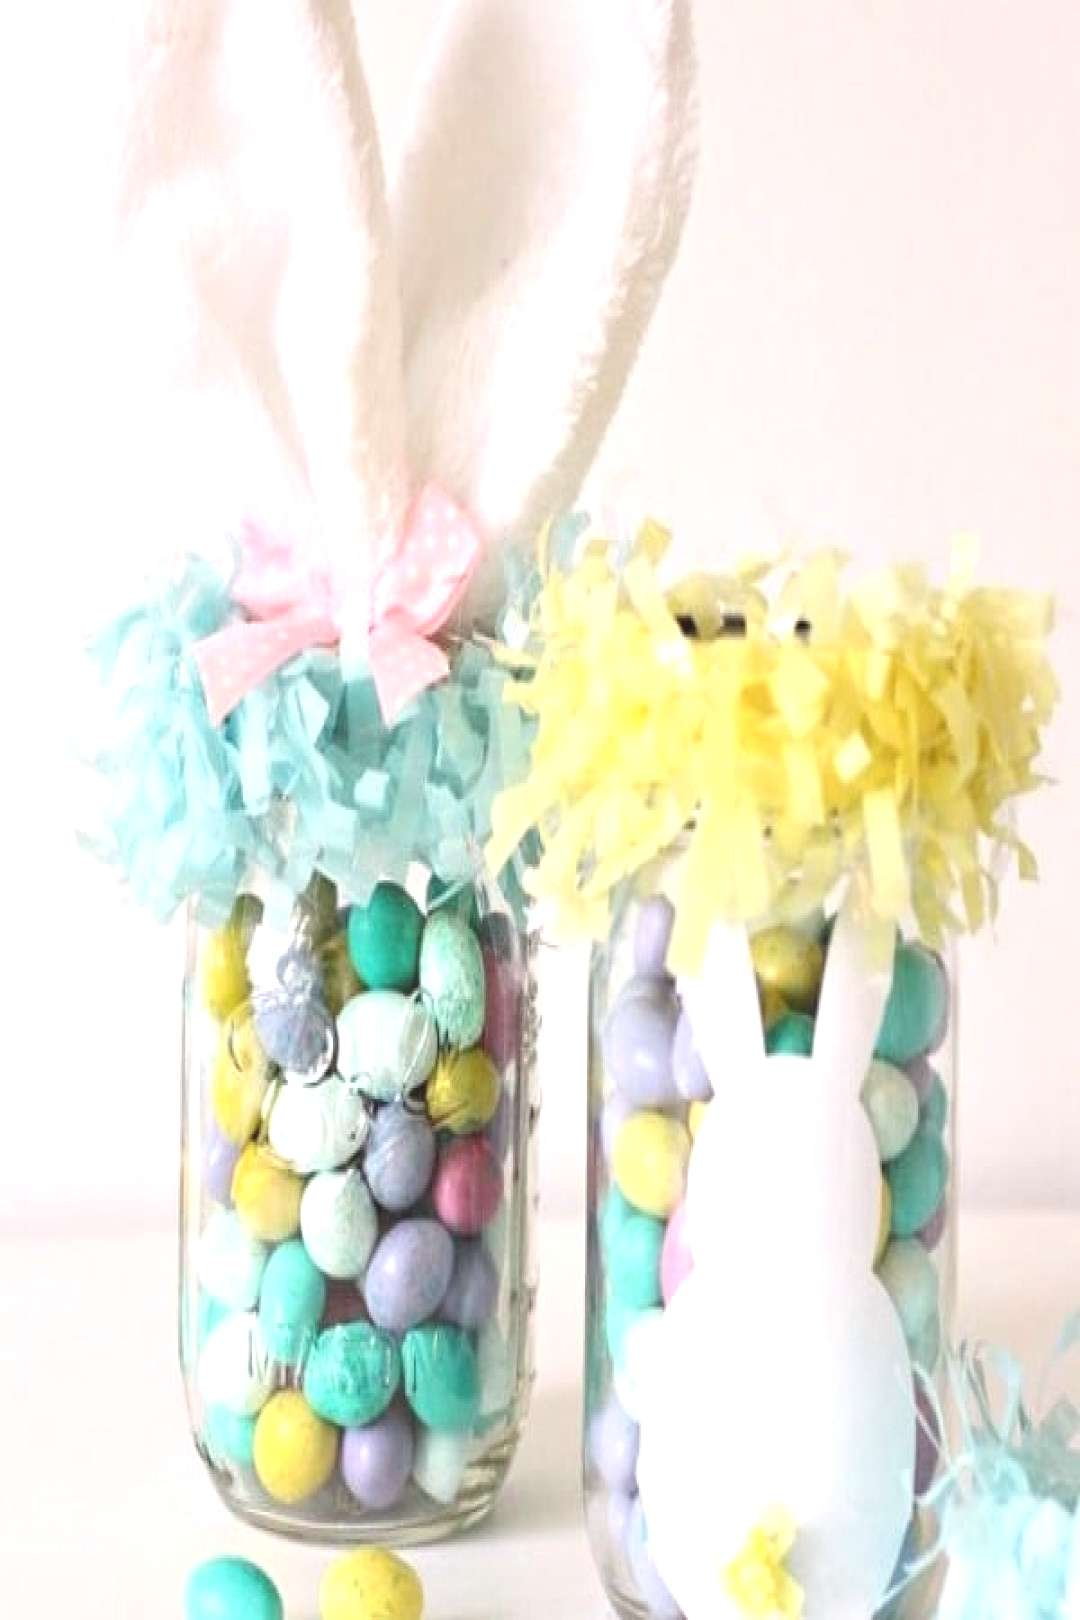 Its not too early to order your Easter wreaths and treats! DM or